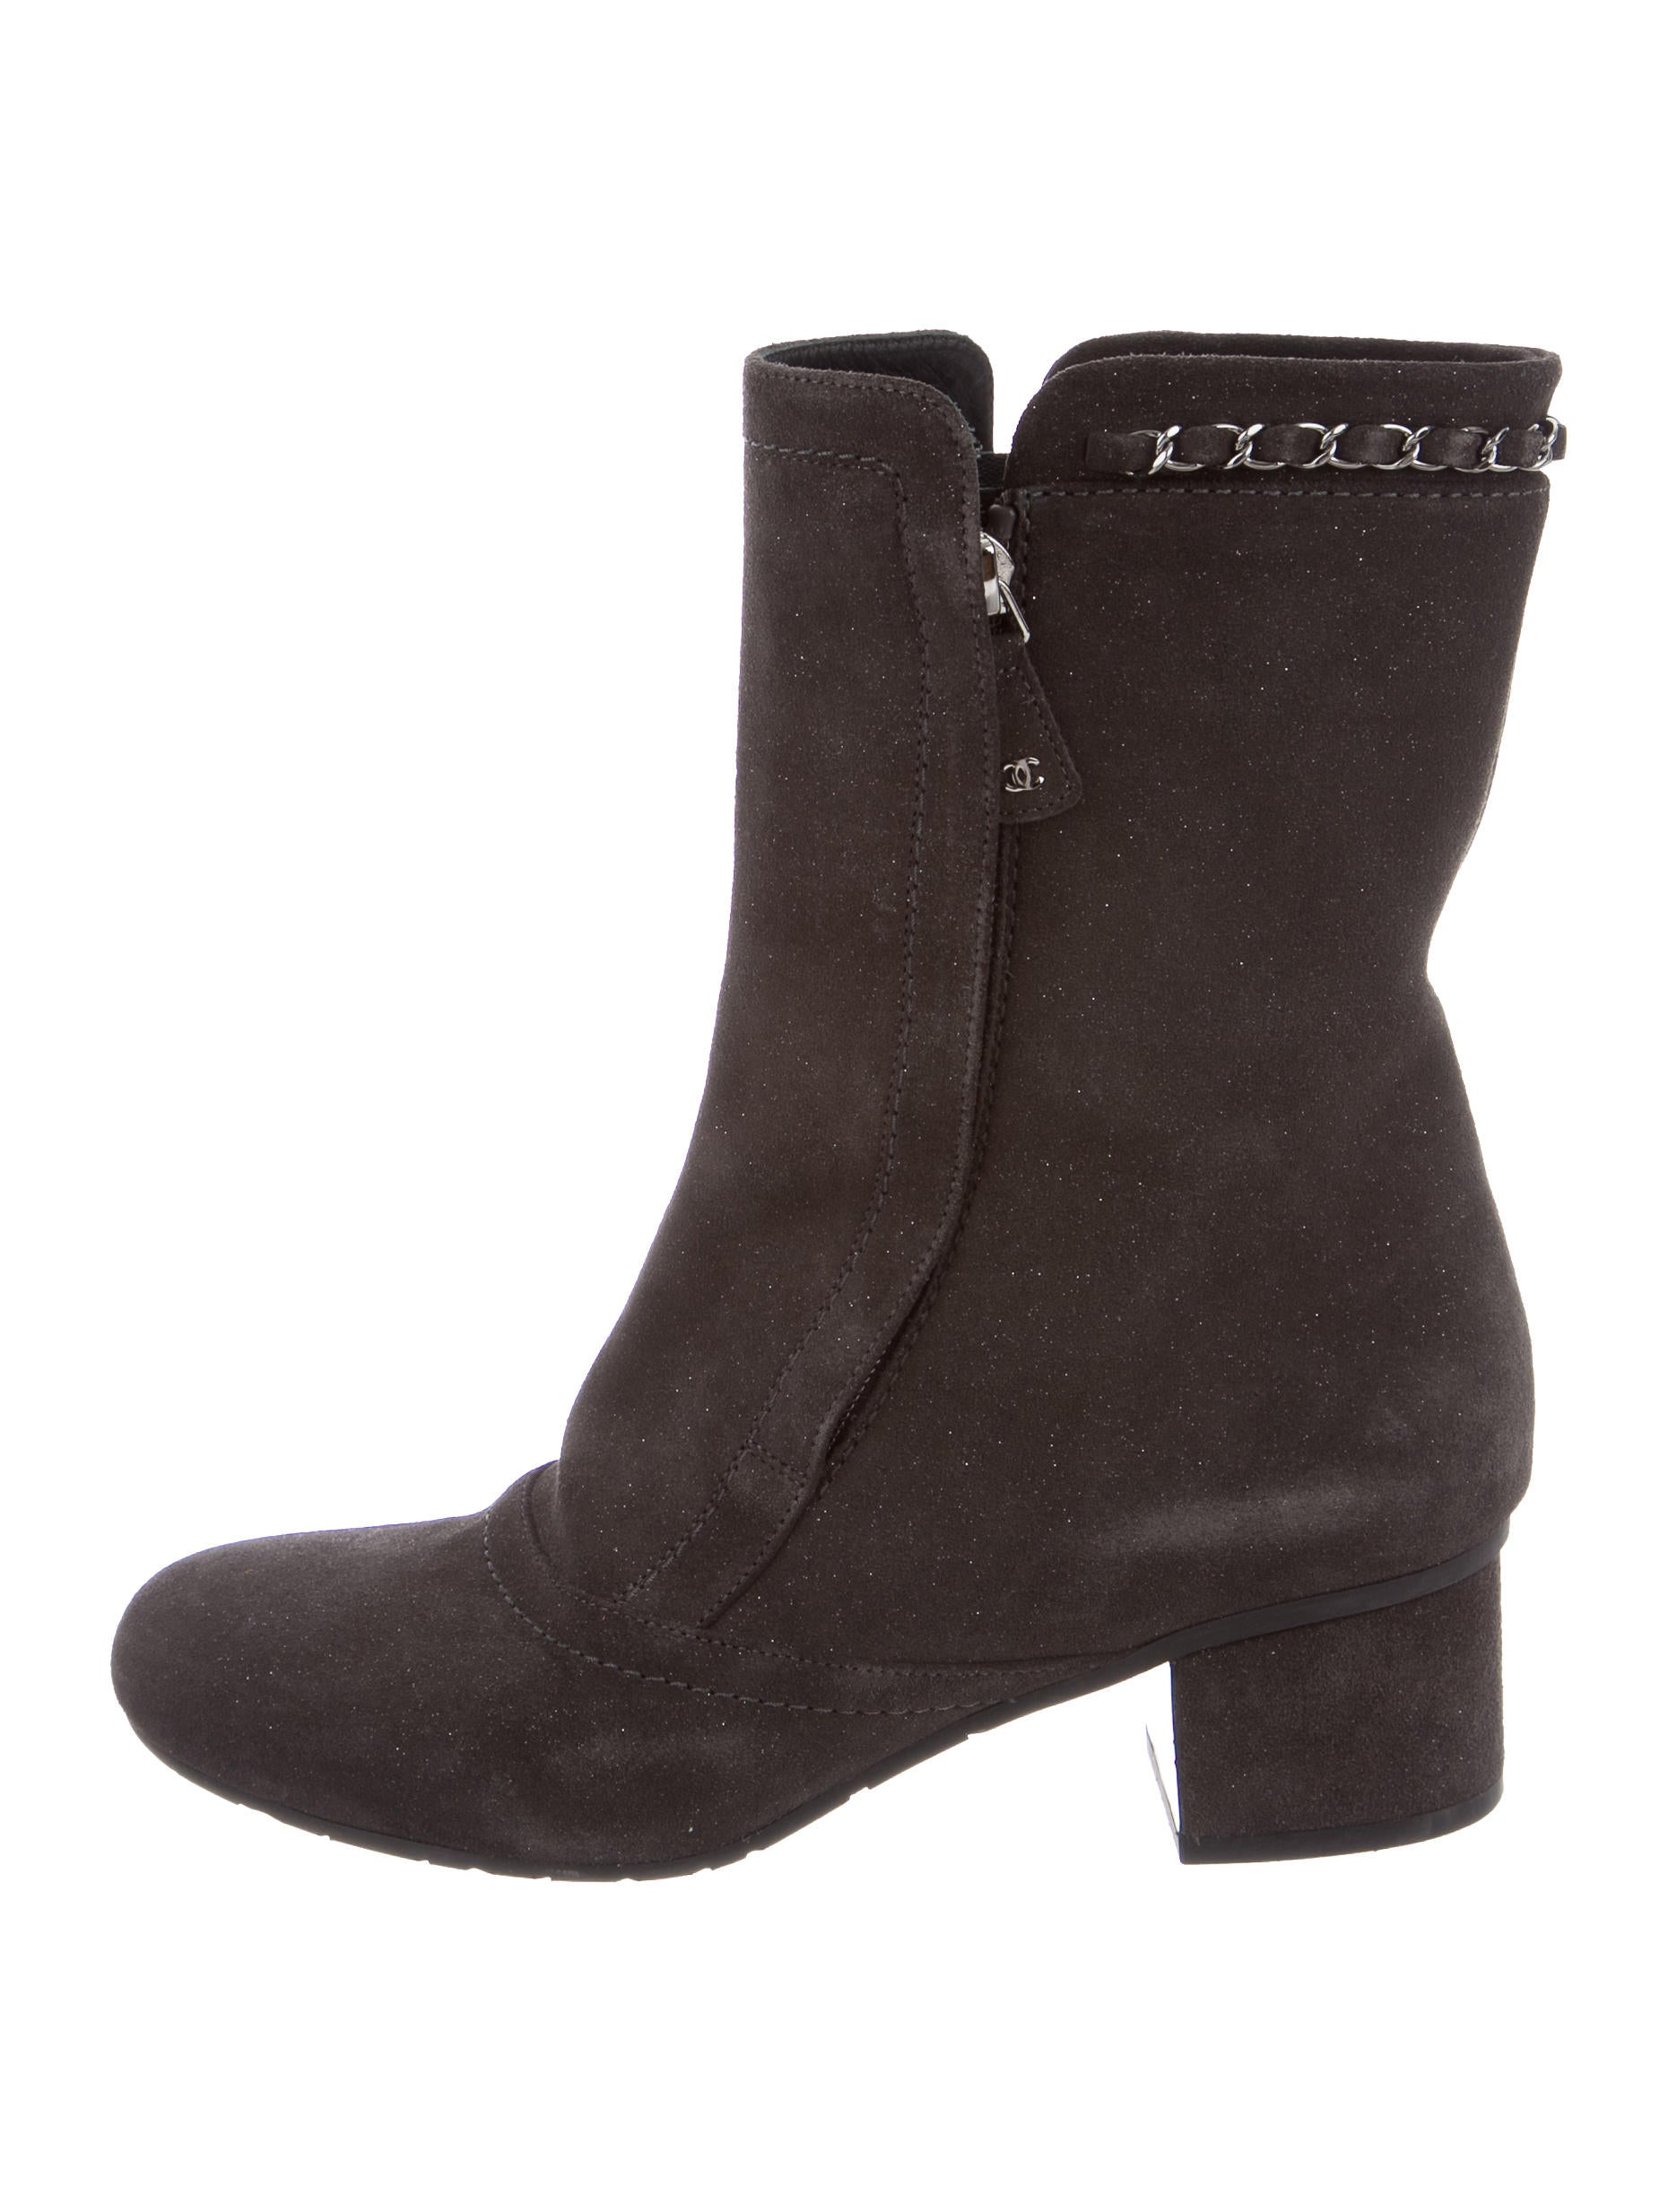 chanel suede mid calf boots shoes cha143680 the realreal